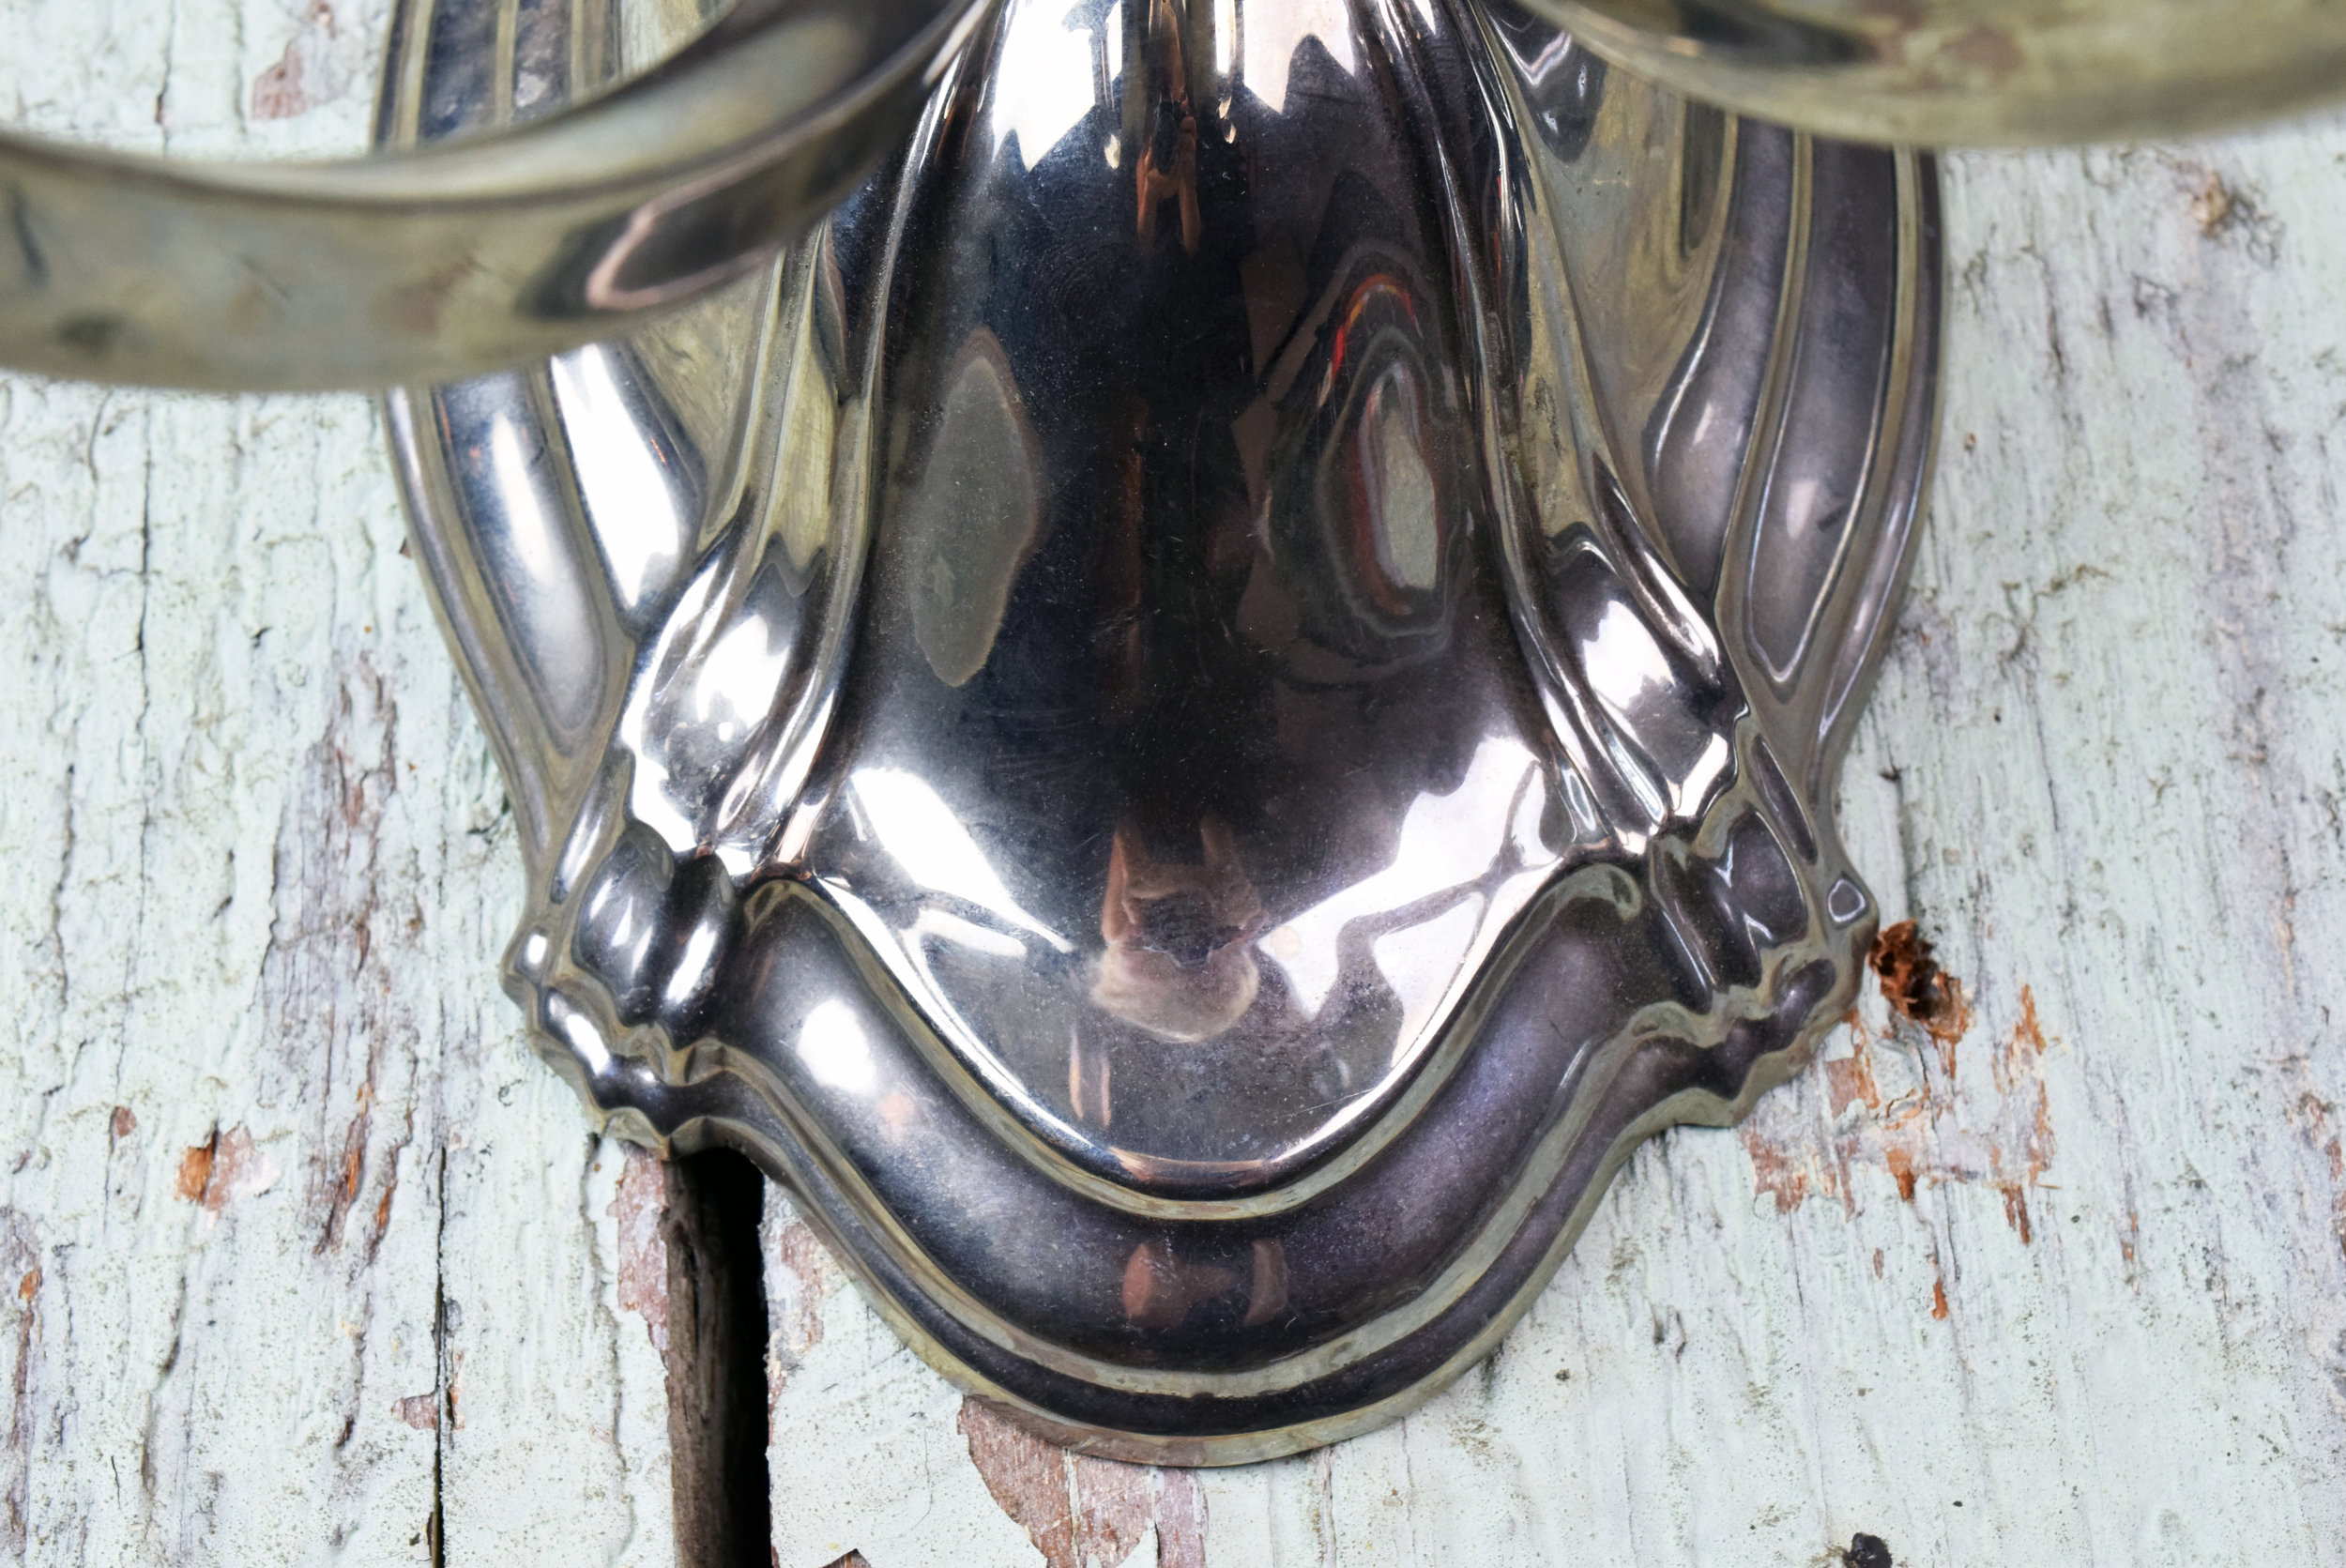 47174-silver-over-bronze-sheffield-2-candle-sconce-detail-bottom.JPG